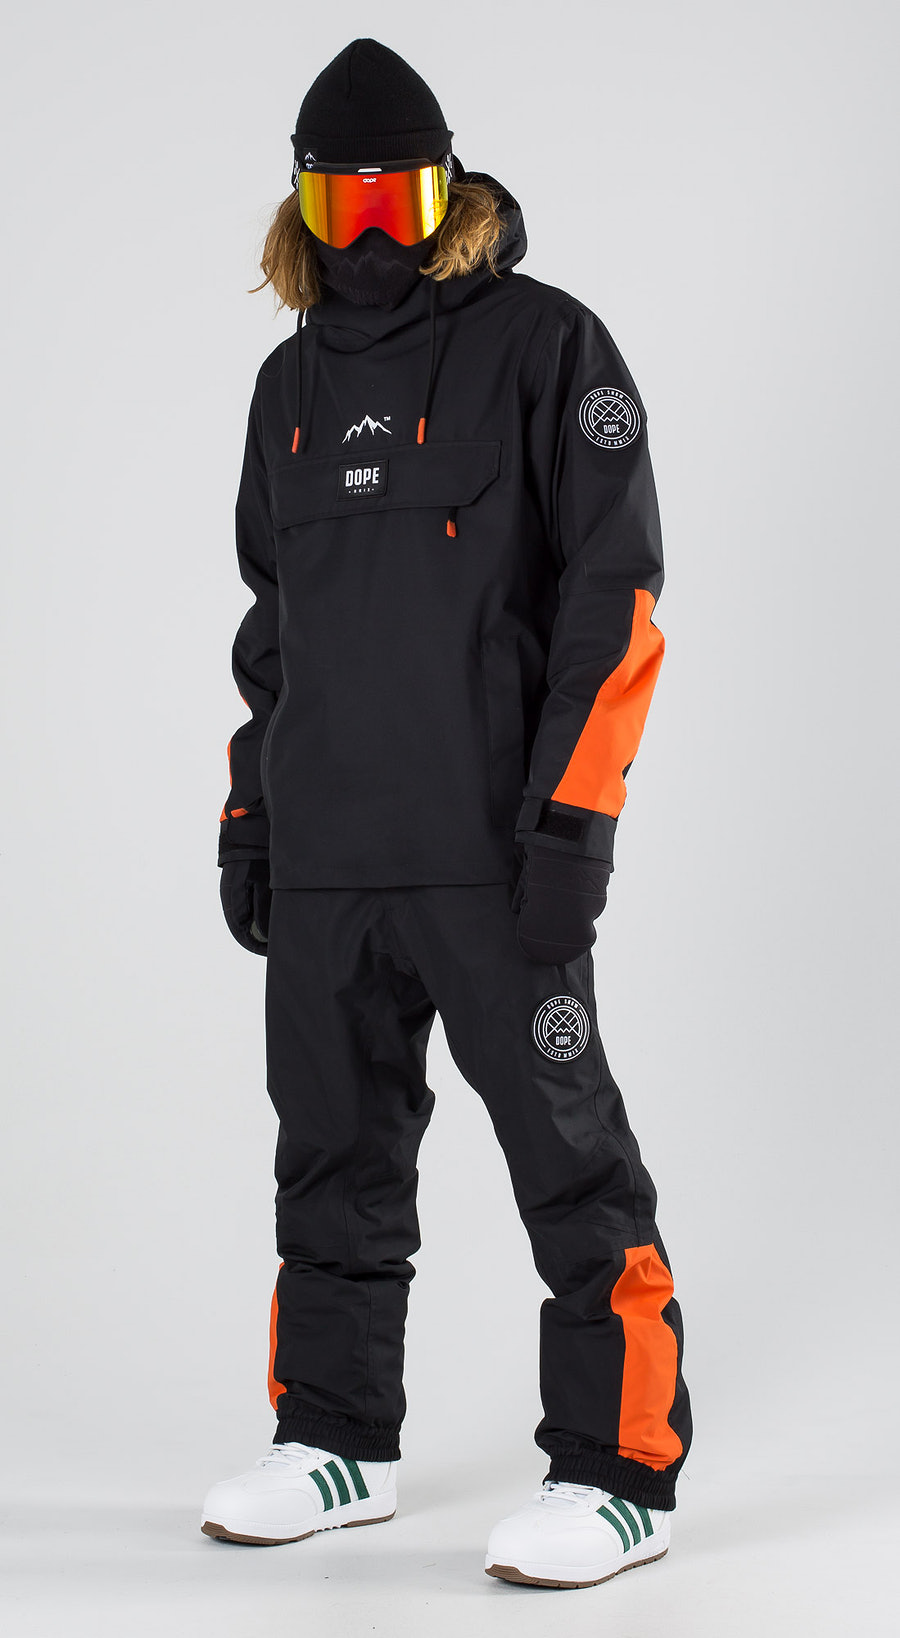 Dope Blizzard LE Black Orange Snowboardkläder Multi